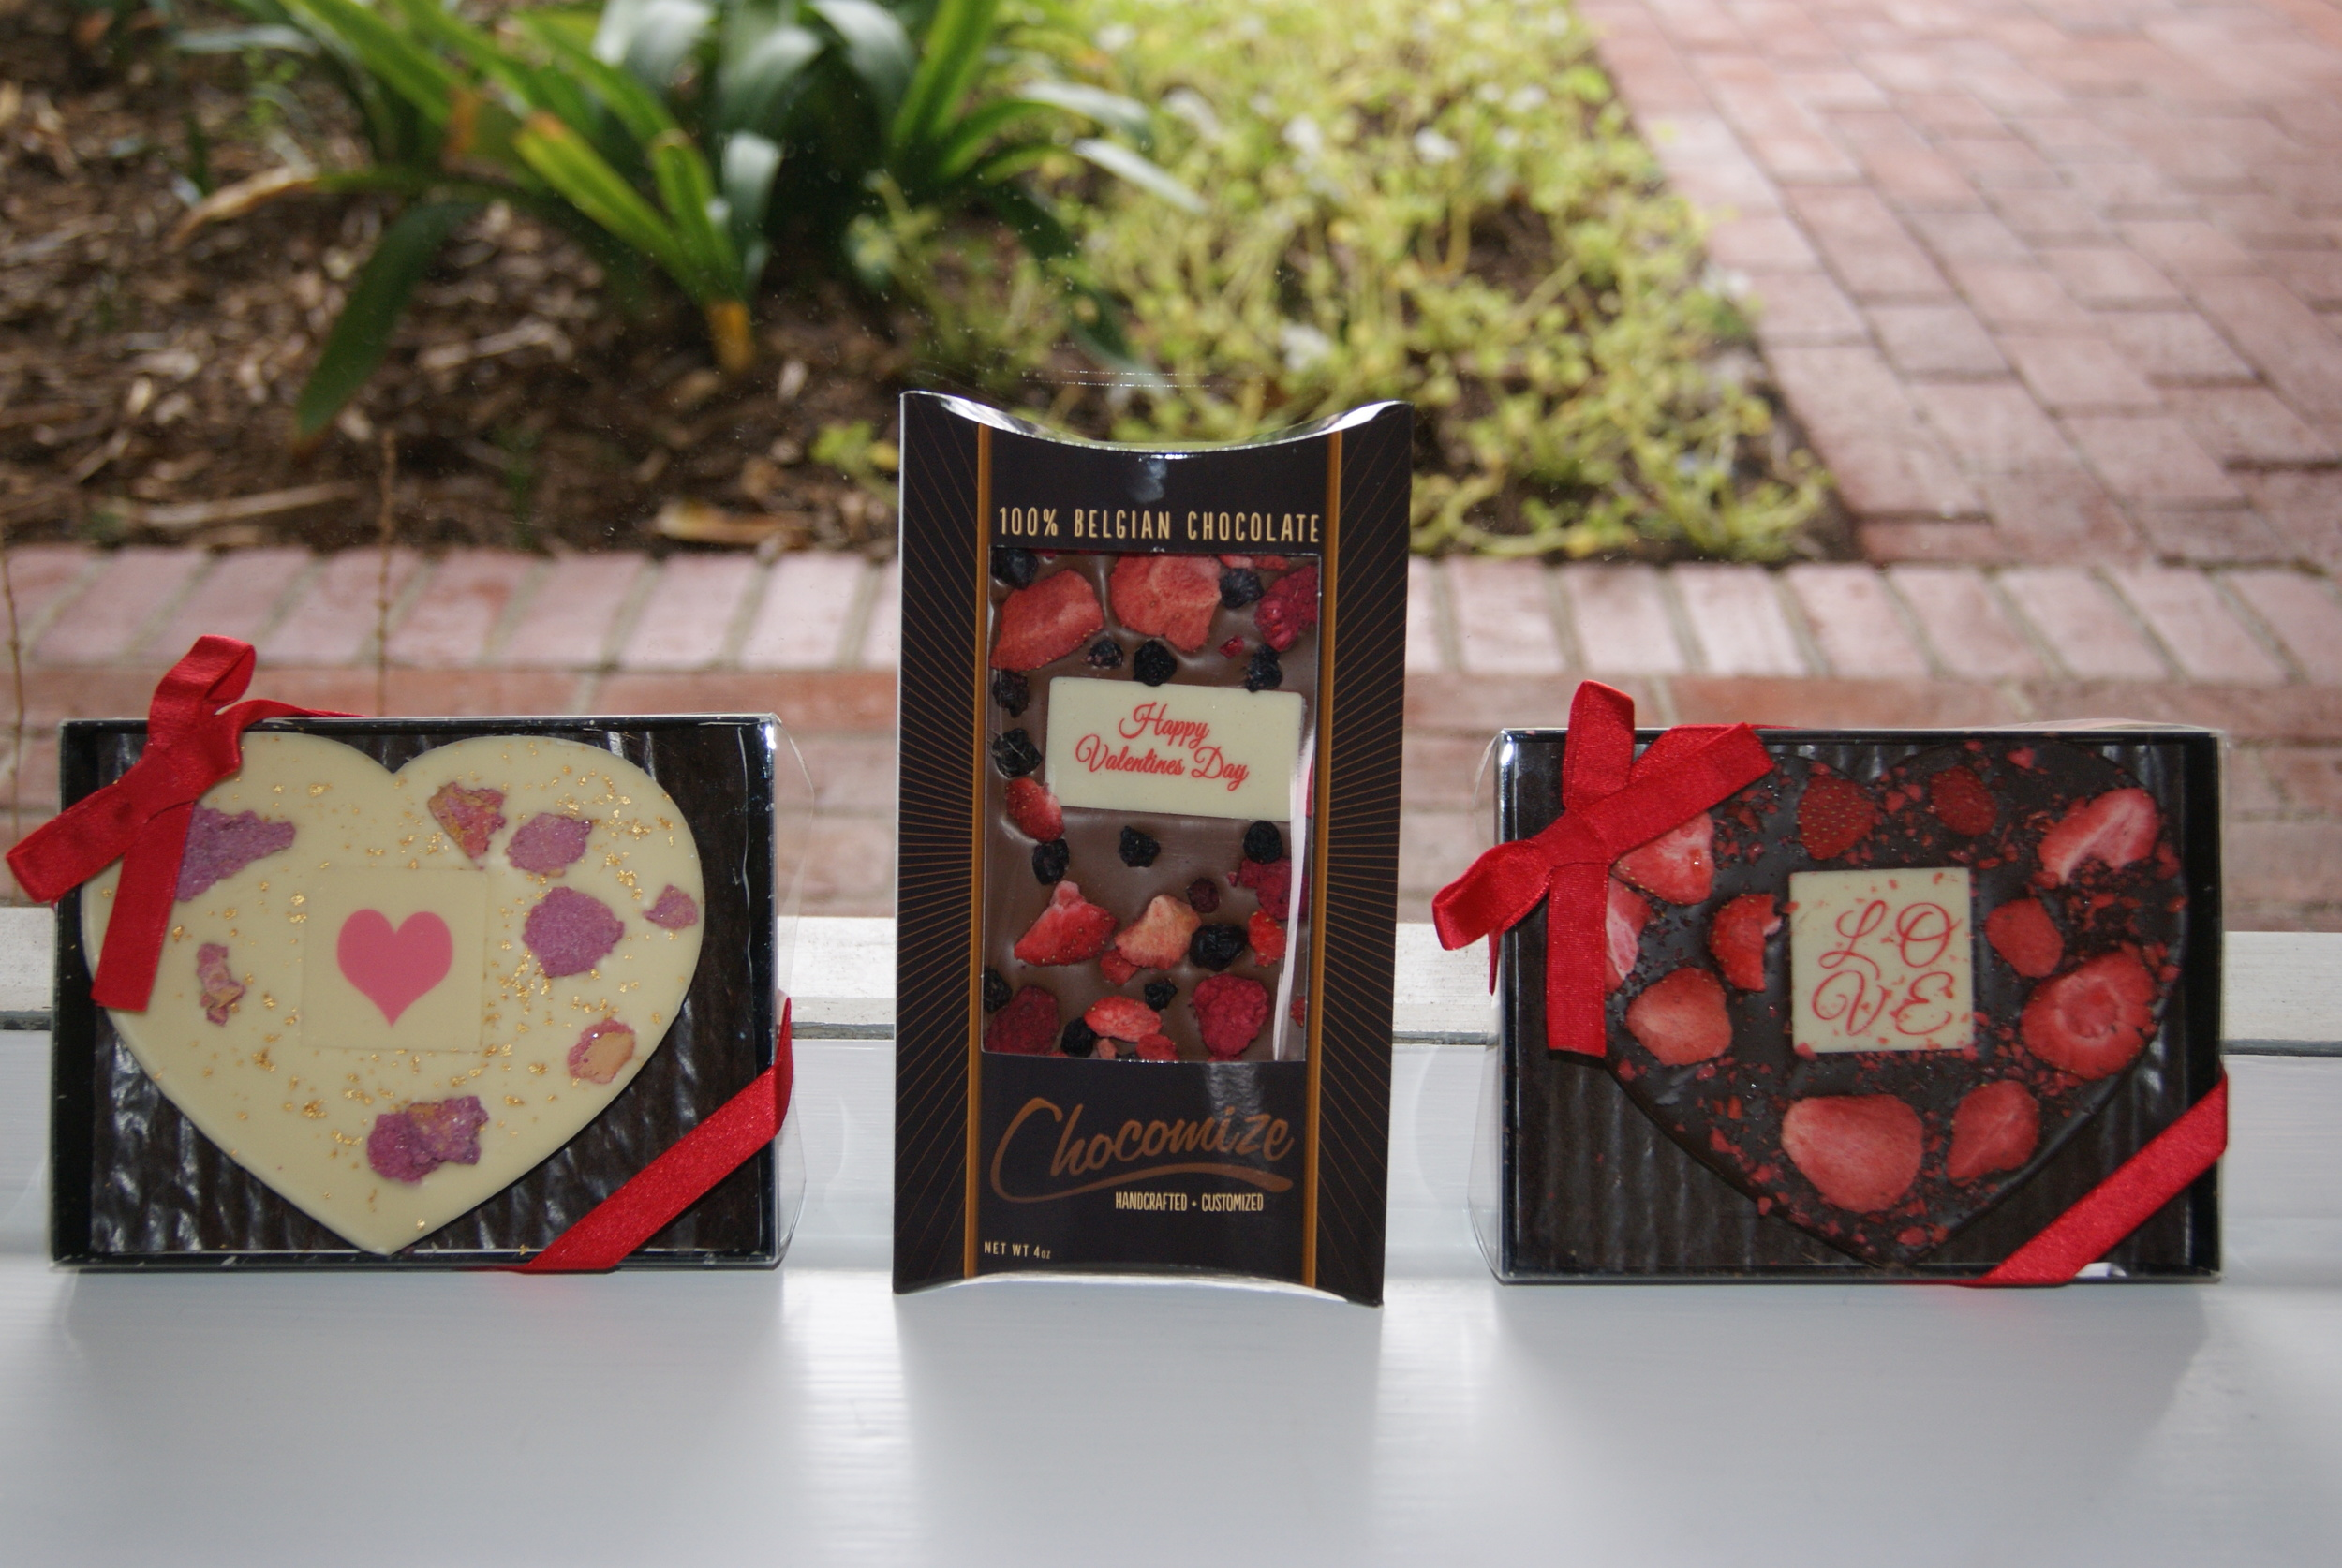 Chocomize has a variety of packaging to choose from too!